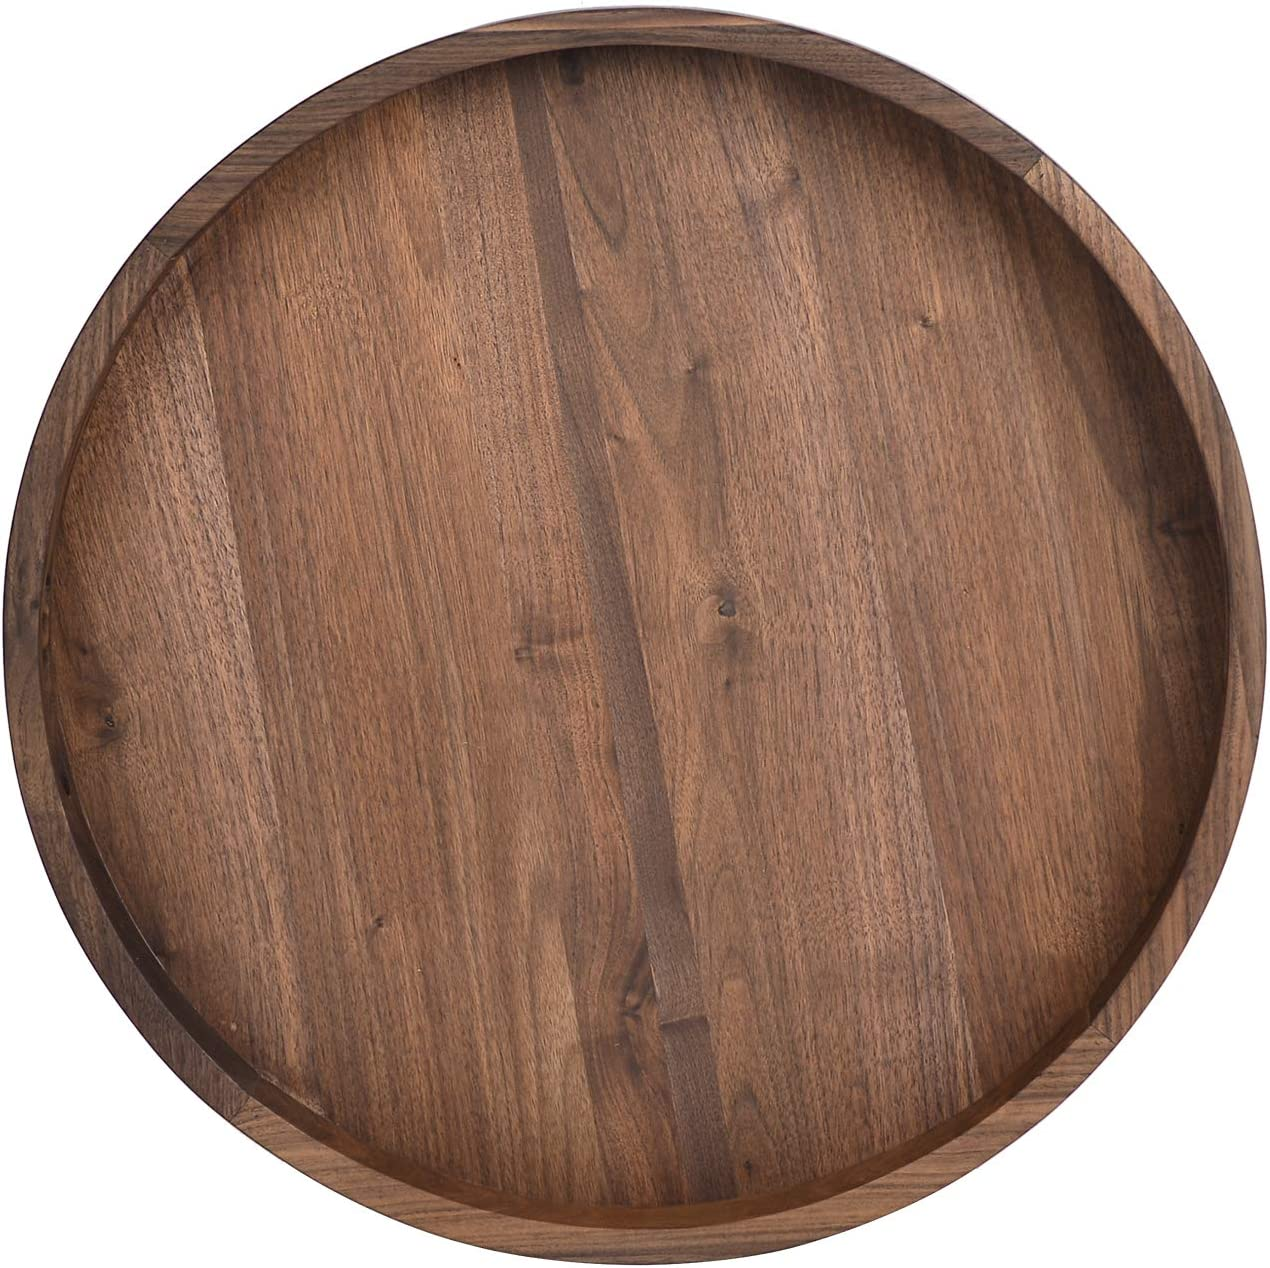 KINGCRAFT 24 x 24 inches Large Round Ottoman Table Tray Wooden Solid Circle Serving Tray with Handle Black Walnut Platter Decorative Tray for Oversized Ottoman Home Breakfast in Bed Tea Coffee